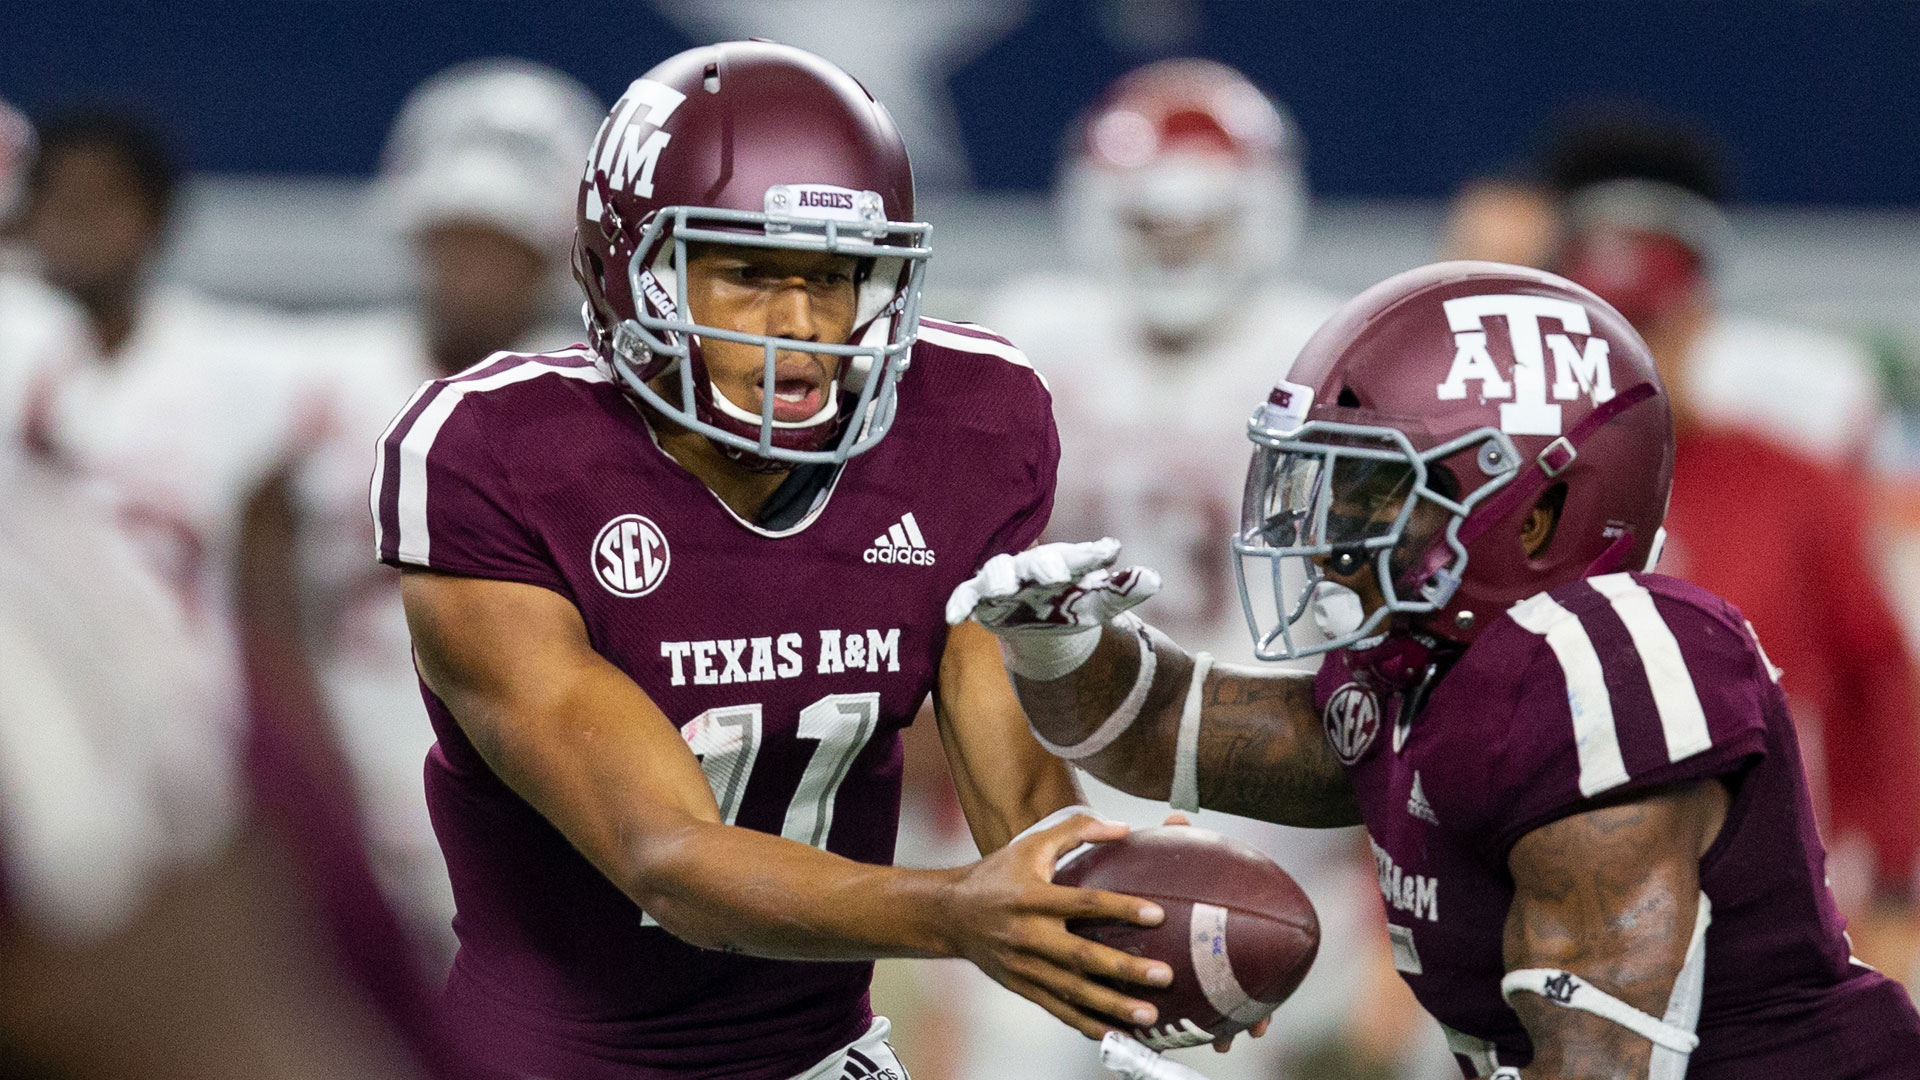 promo code abab4 5c8f8 What To Watch For | Texas A&M vs. Kentucky - Texas A&M ...